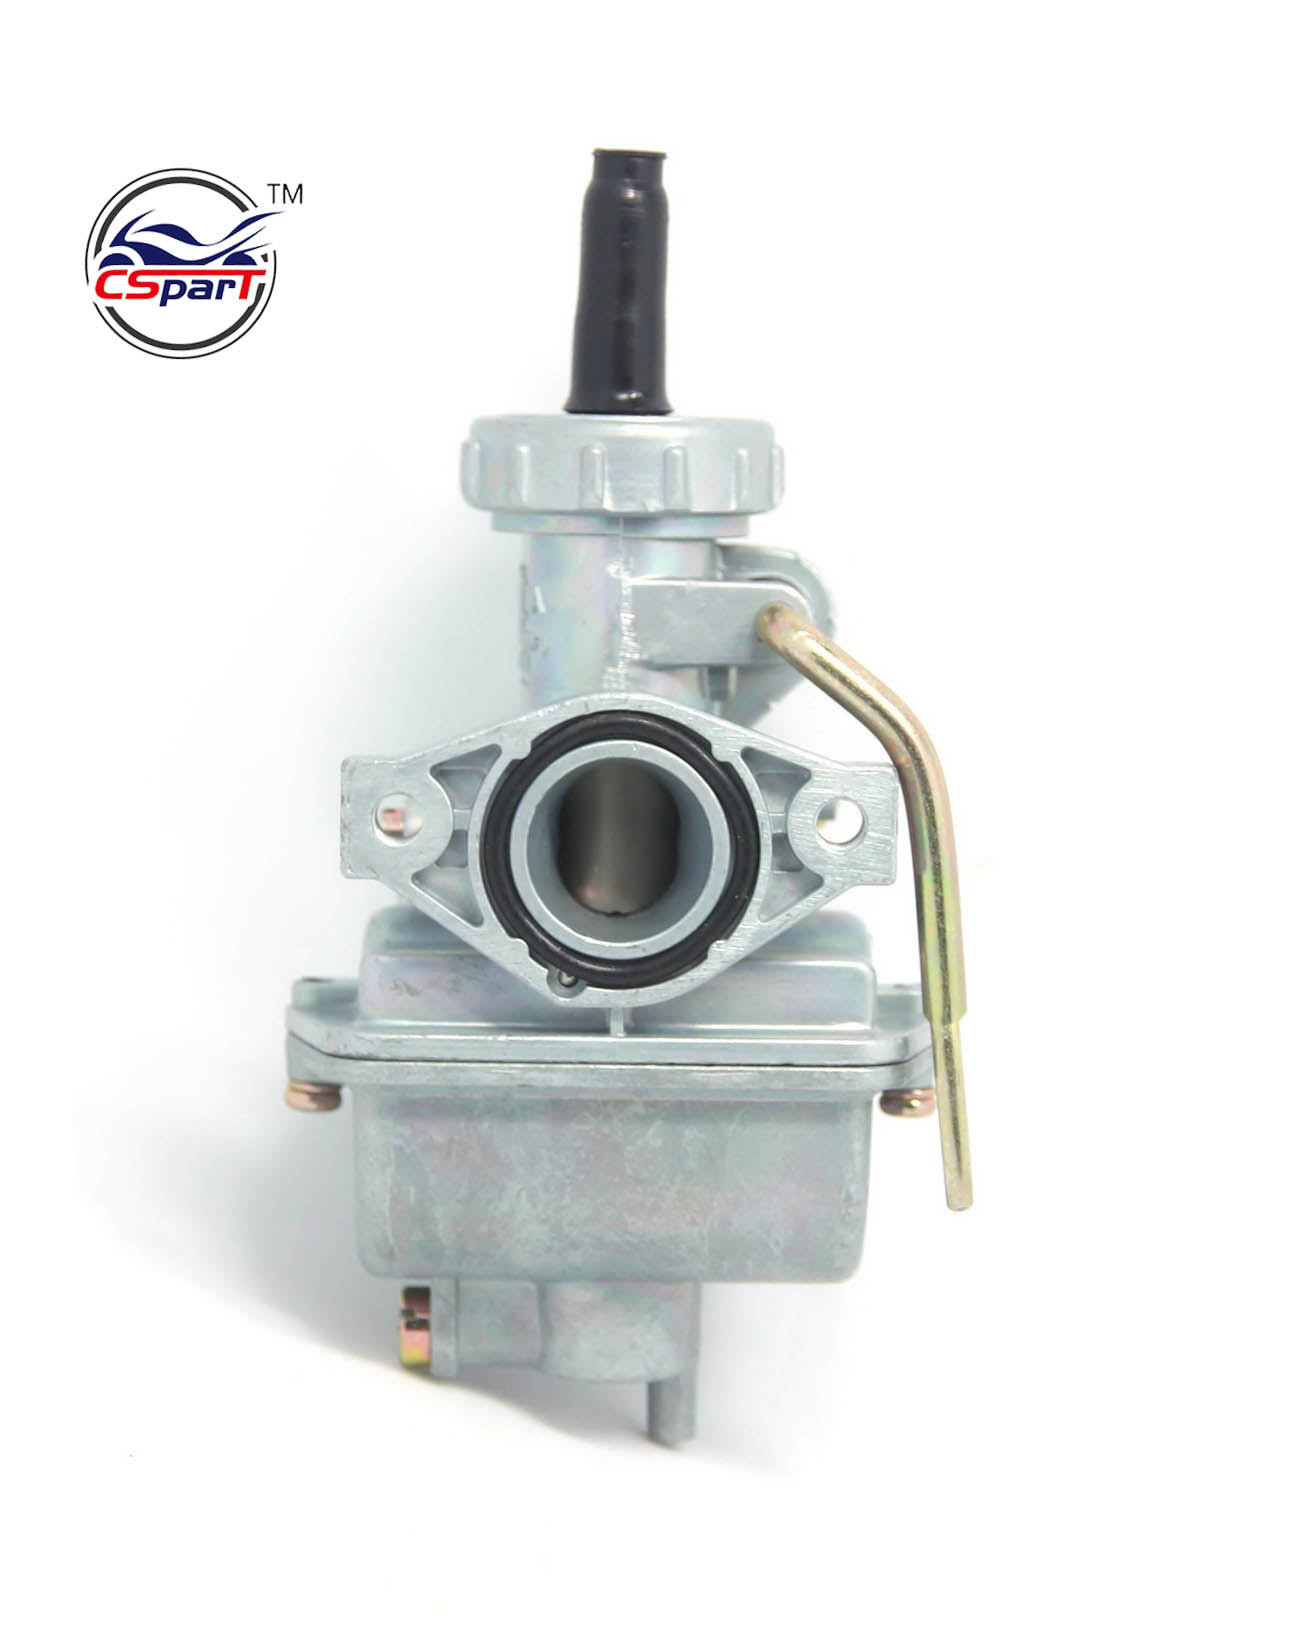 New Carburetor Carb Pz22 22mm For 70cc 110cc 125cc Quad Atv Dirt Bike Hand Choke Back To Search Resultsautomobiles & Motorcycles